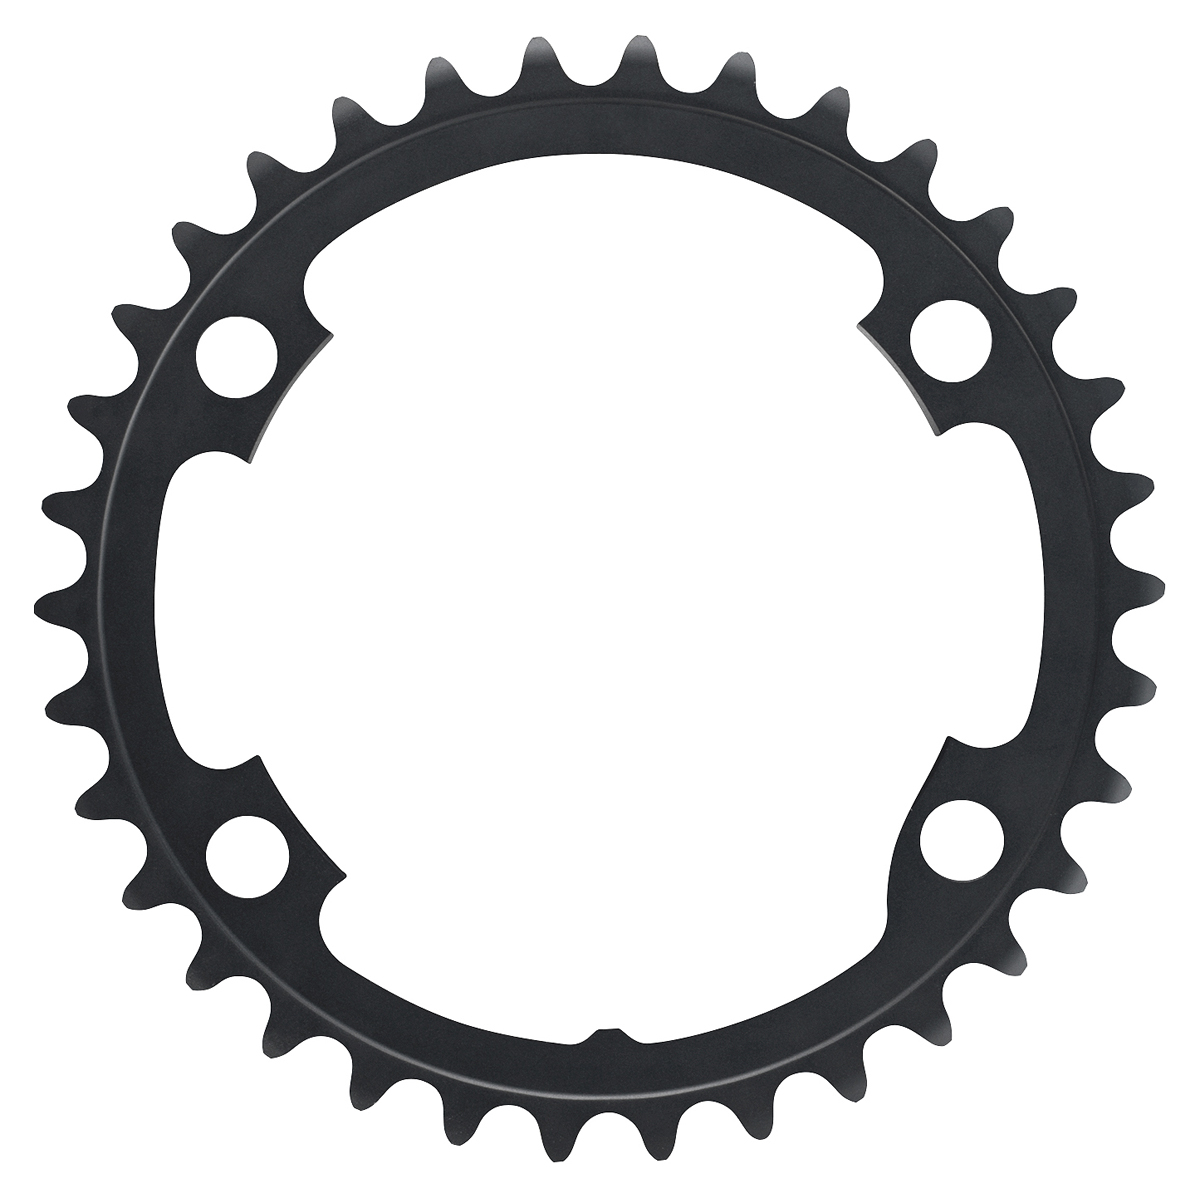 Shimano Klinge 105 FC-R7000 - 11 speed BCD 110/4 - 39T - Y1WV39000 | chainrings_component